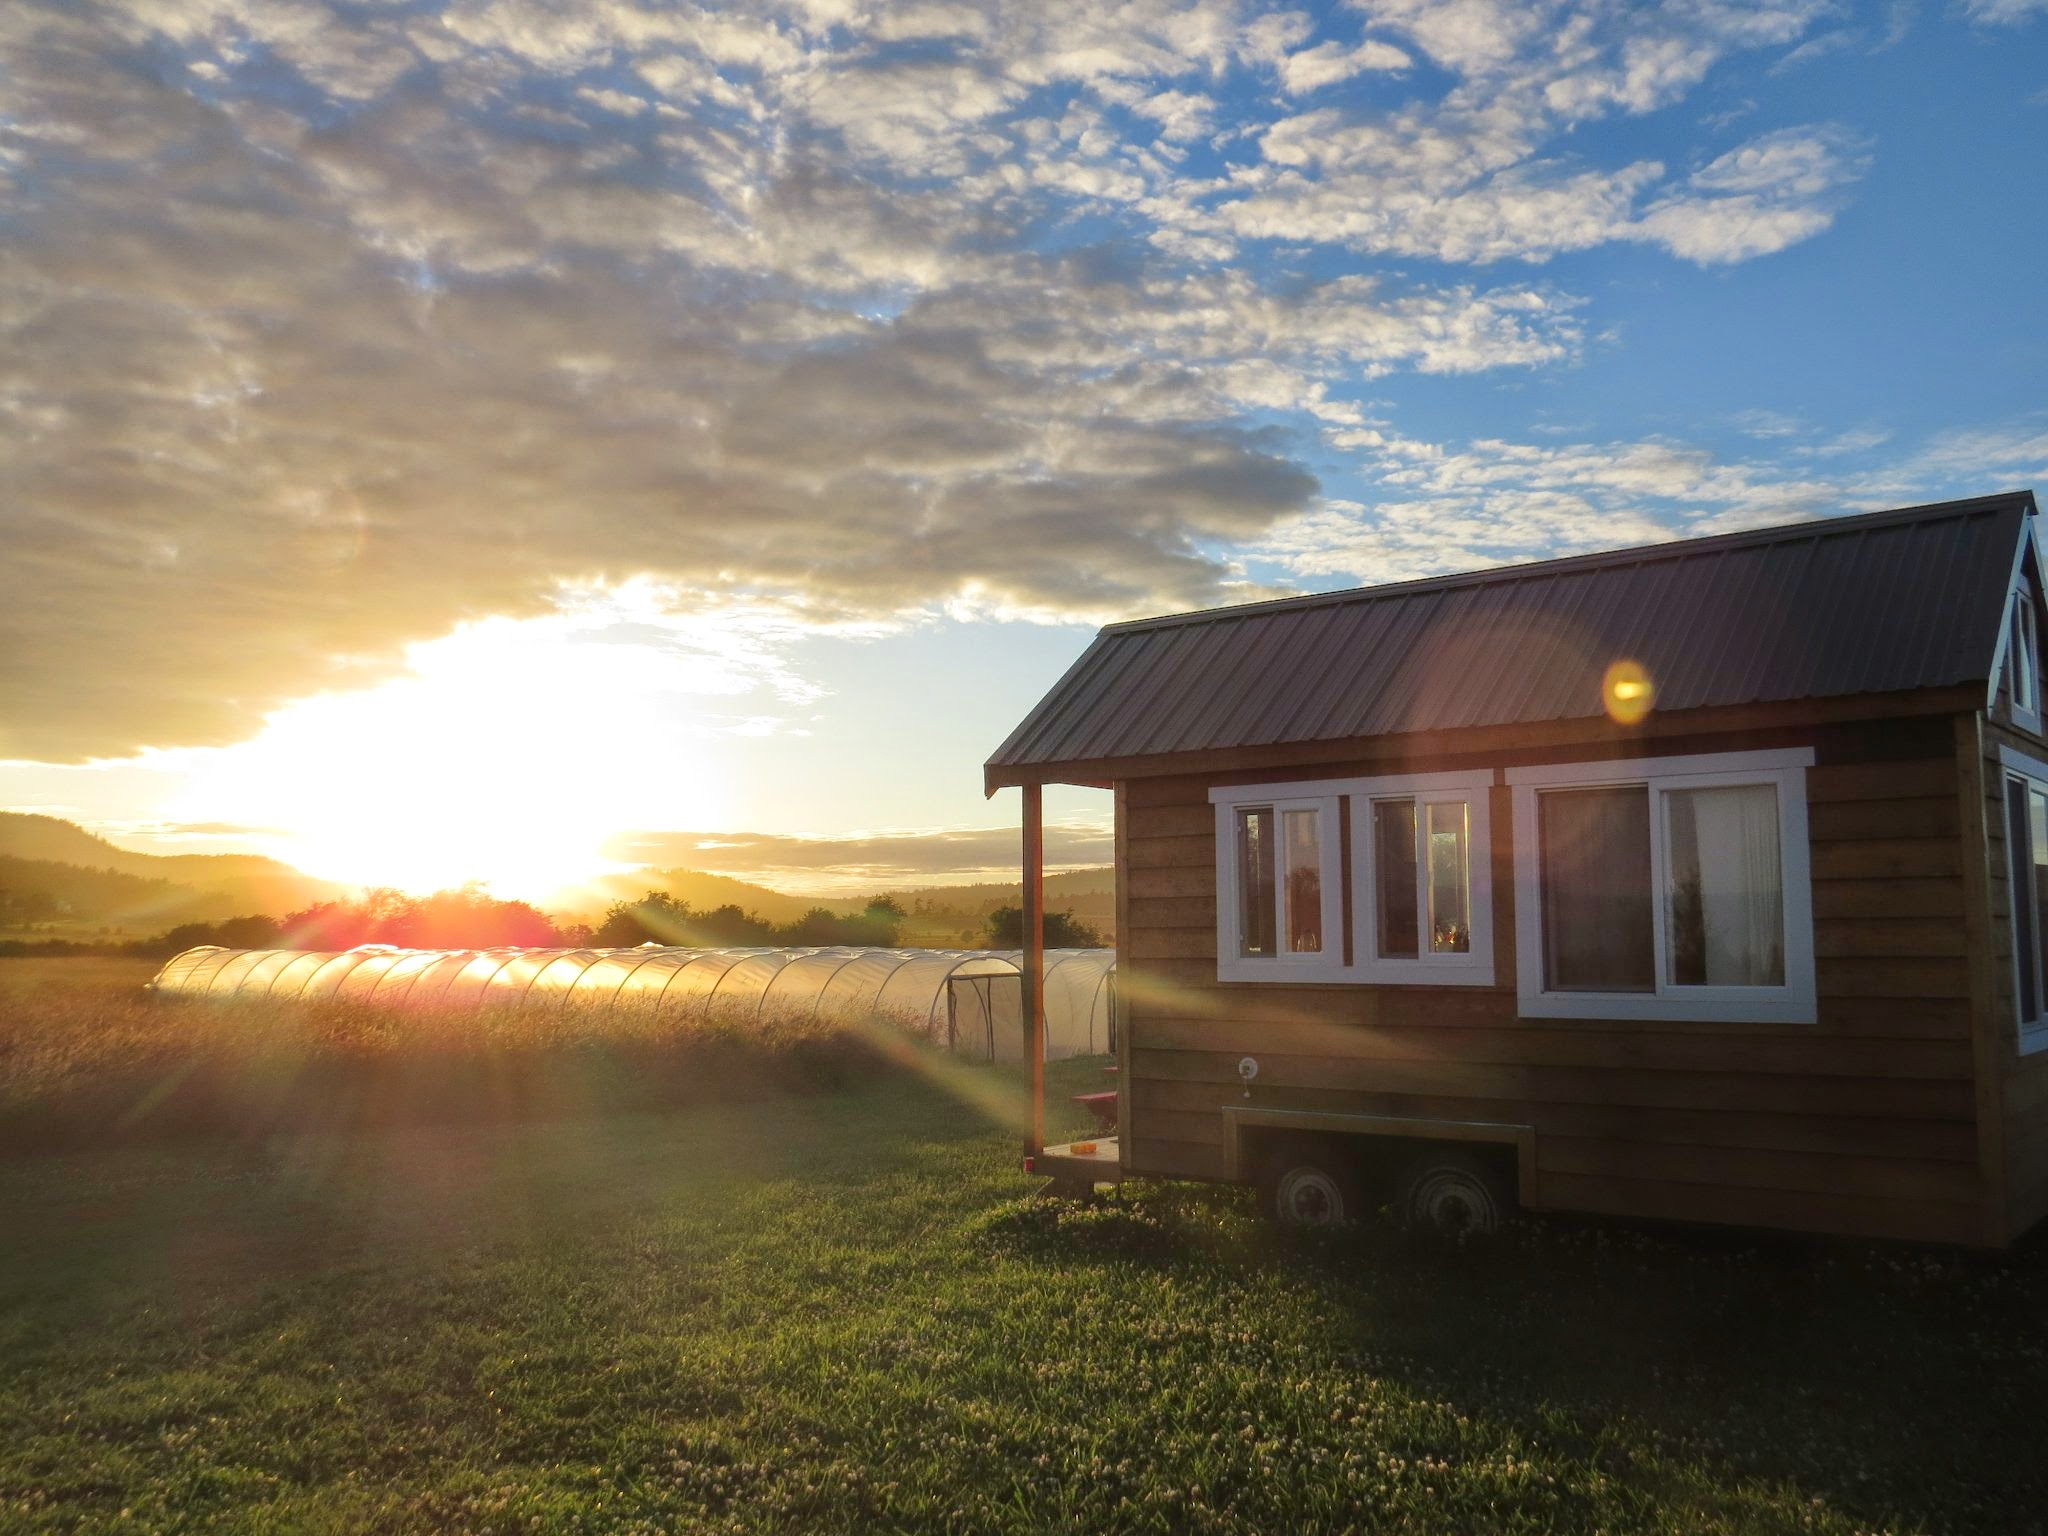 10 questions to ask before choosing a tiny home zillow for Zillow tiny homes for sale